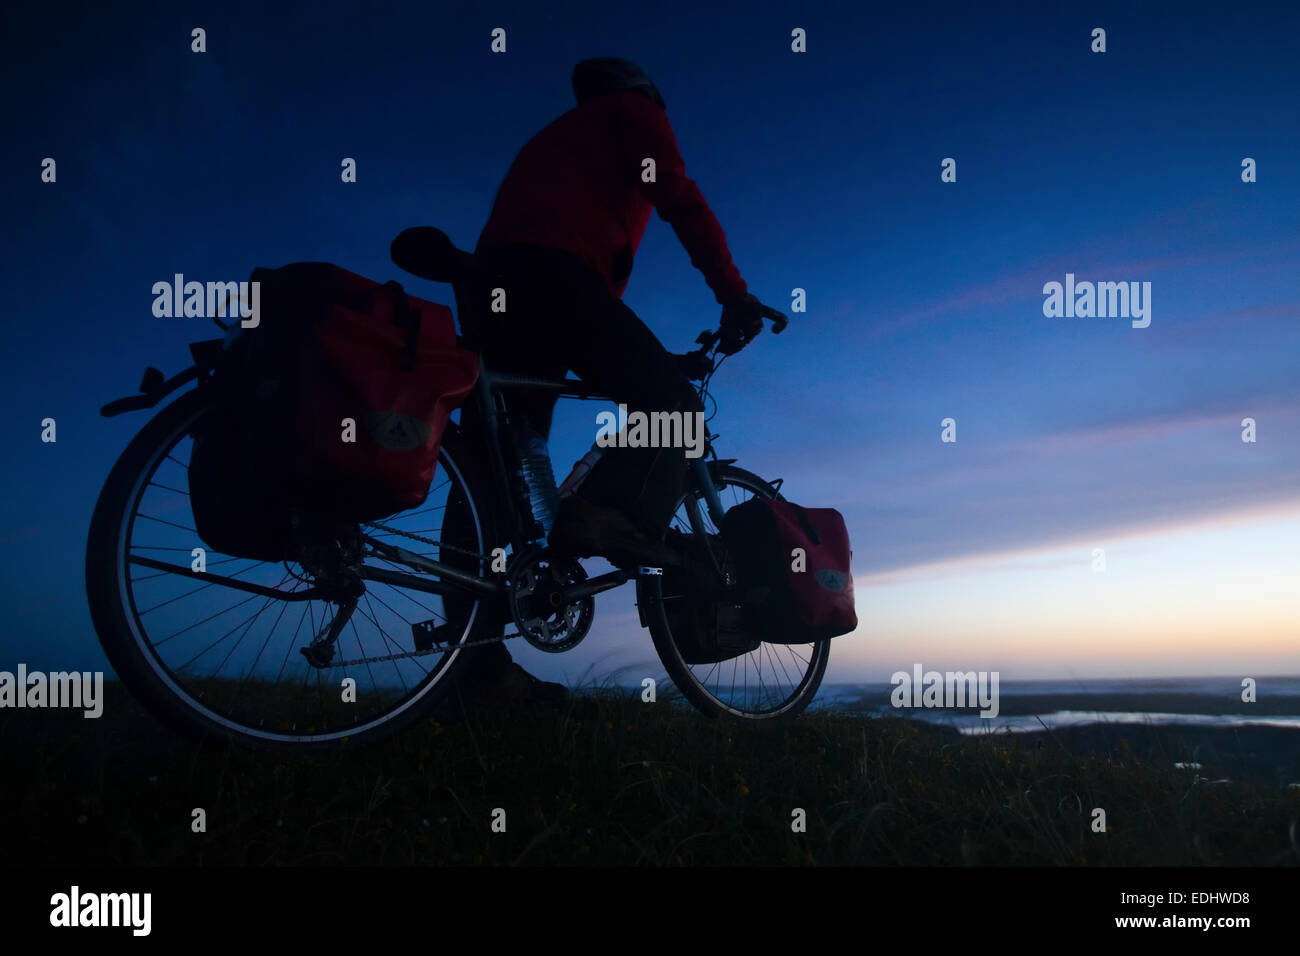 Cyclist on a bicycle tour, Isle of Barra, Outer Hebrides, Scotland, United Kingdom - Stock Image